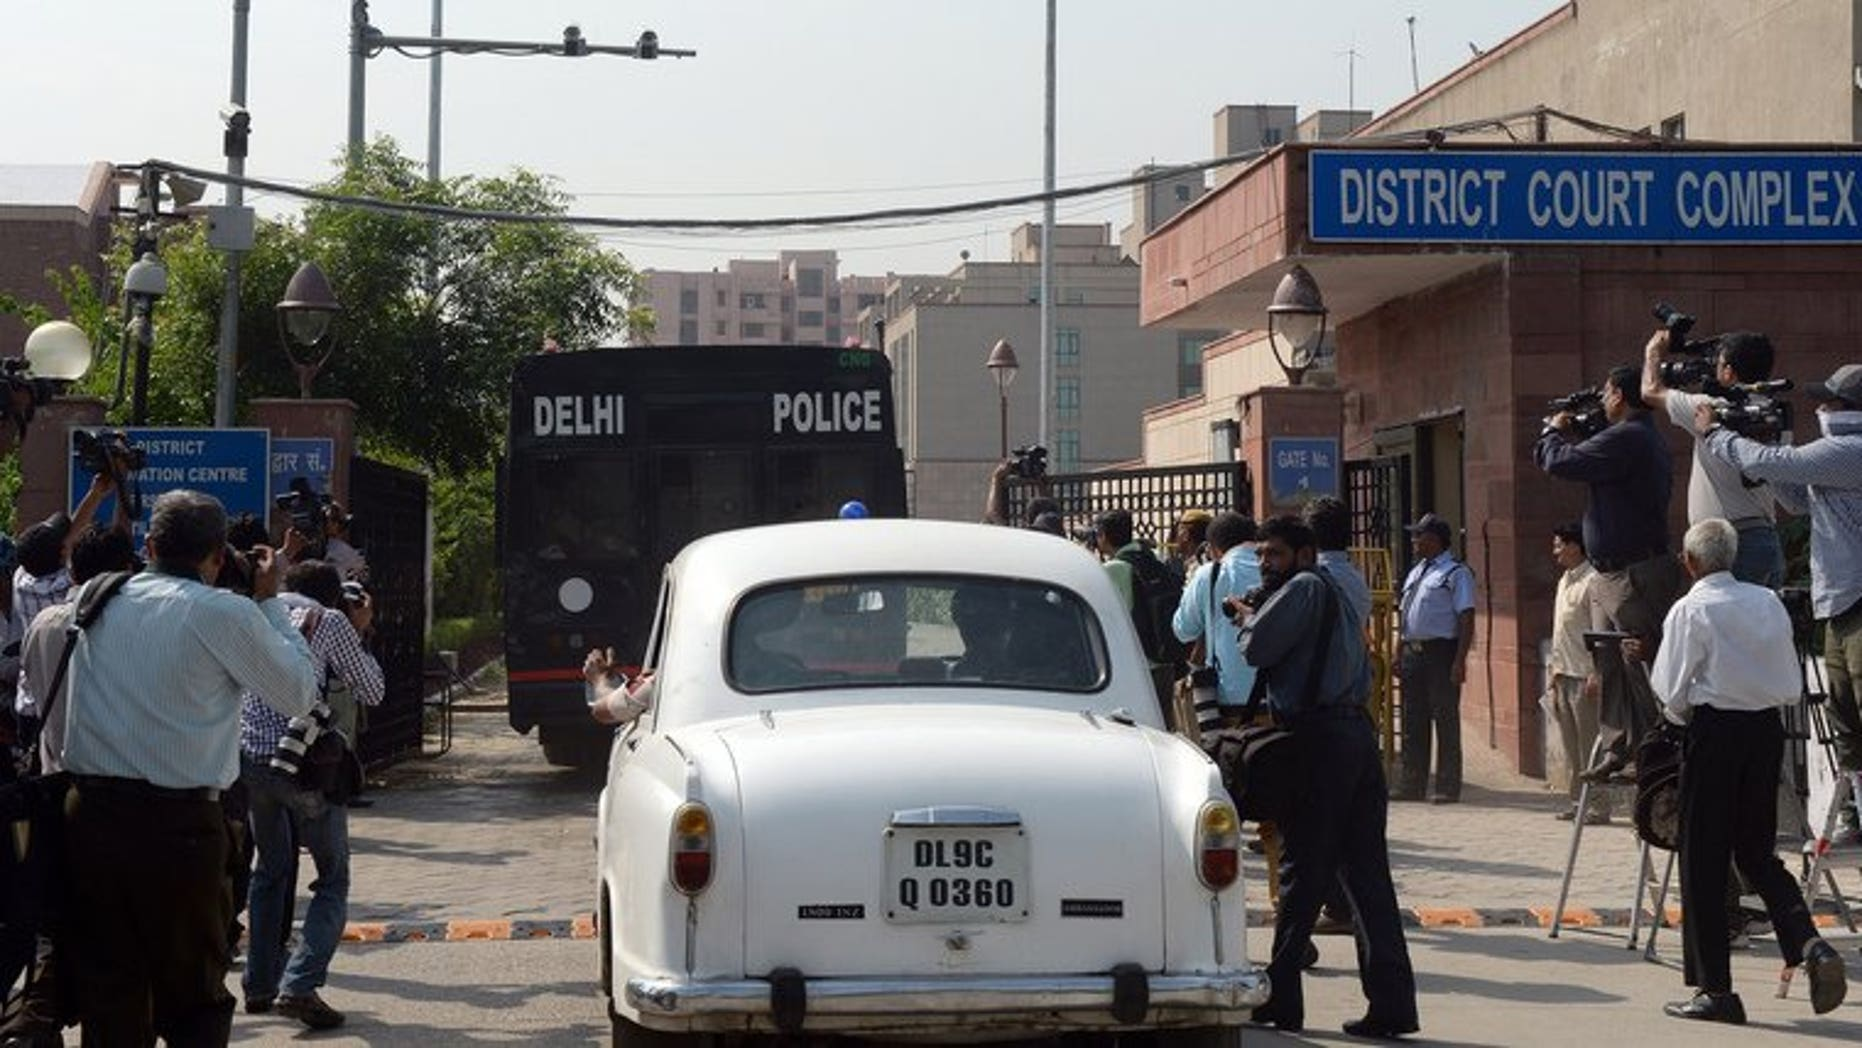 A Delhi police van believed to be carrying the accused in a gang rape case enters the court complex on September 10, 2013. All four defendants were found guilty of the gang rape and murder of a student on a New Delhi bus.